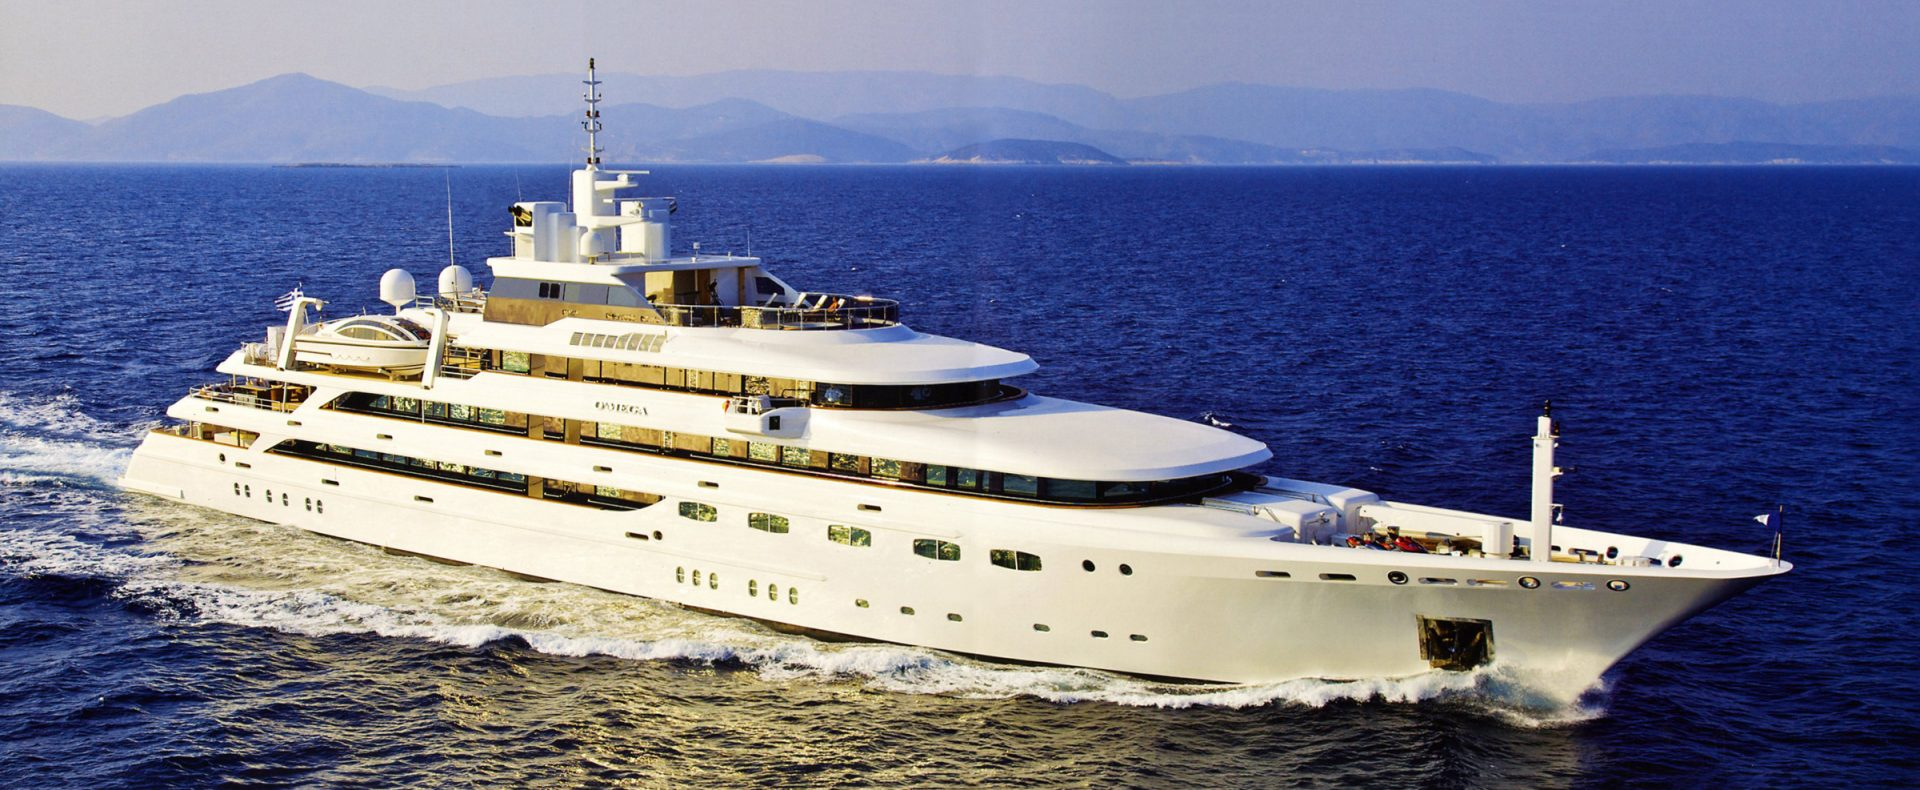 O'MEGA YACHT PRICE - COST & SIMILAR LUXURY YACHTS